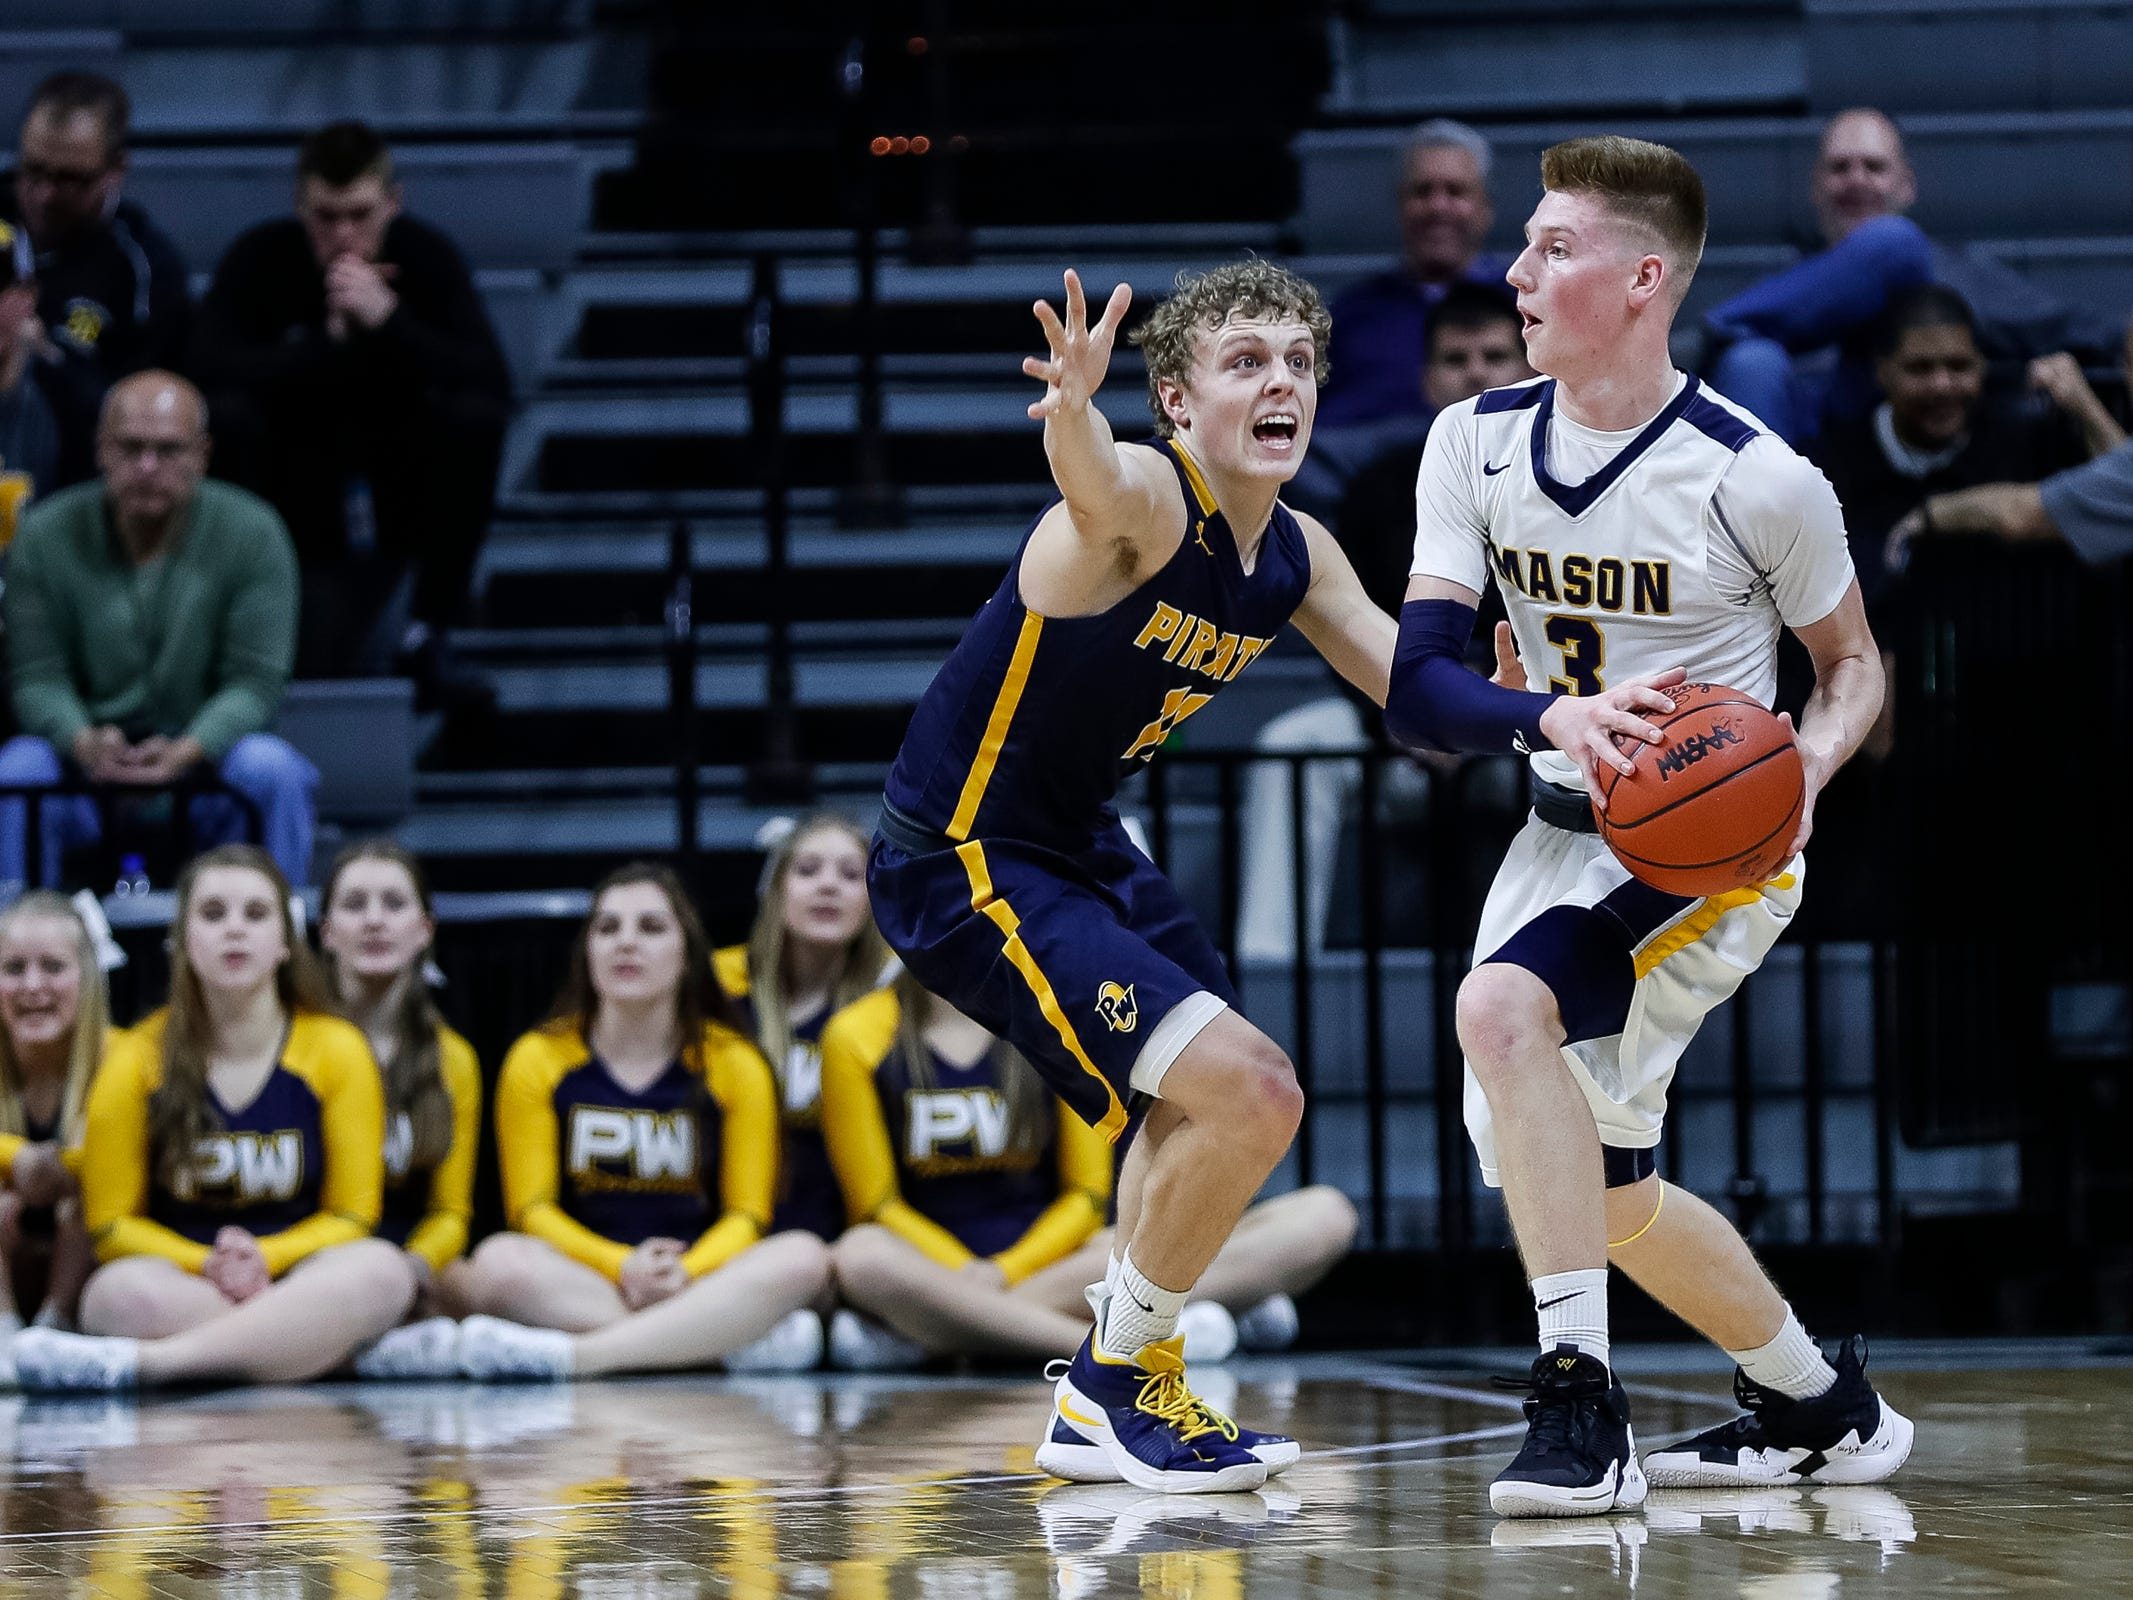 Erie-Mason's Jake Trainor (3) is defended by Pewamo-Westphalia's Collin Trierweiler (11) during the first half of MHSAA Division 3 semifinal at the Breslin Center in East Lansing, Thursday, March 14, 2019.